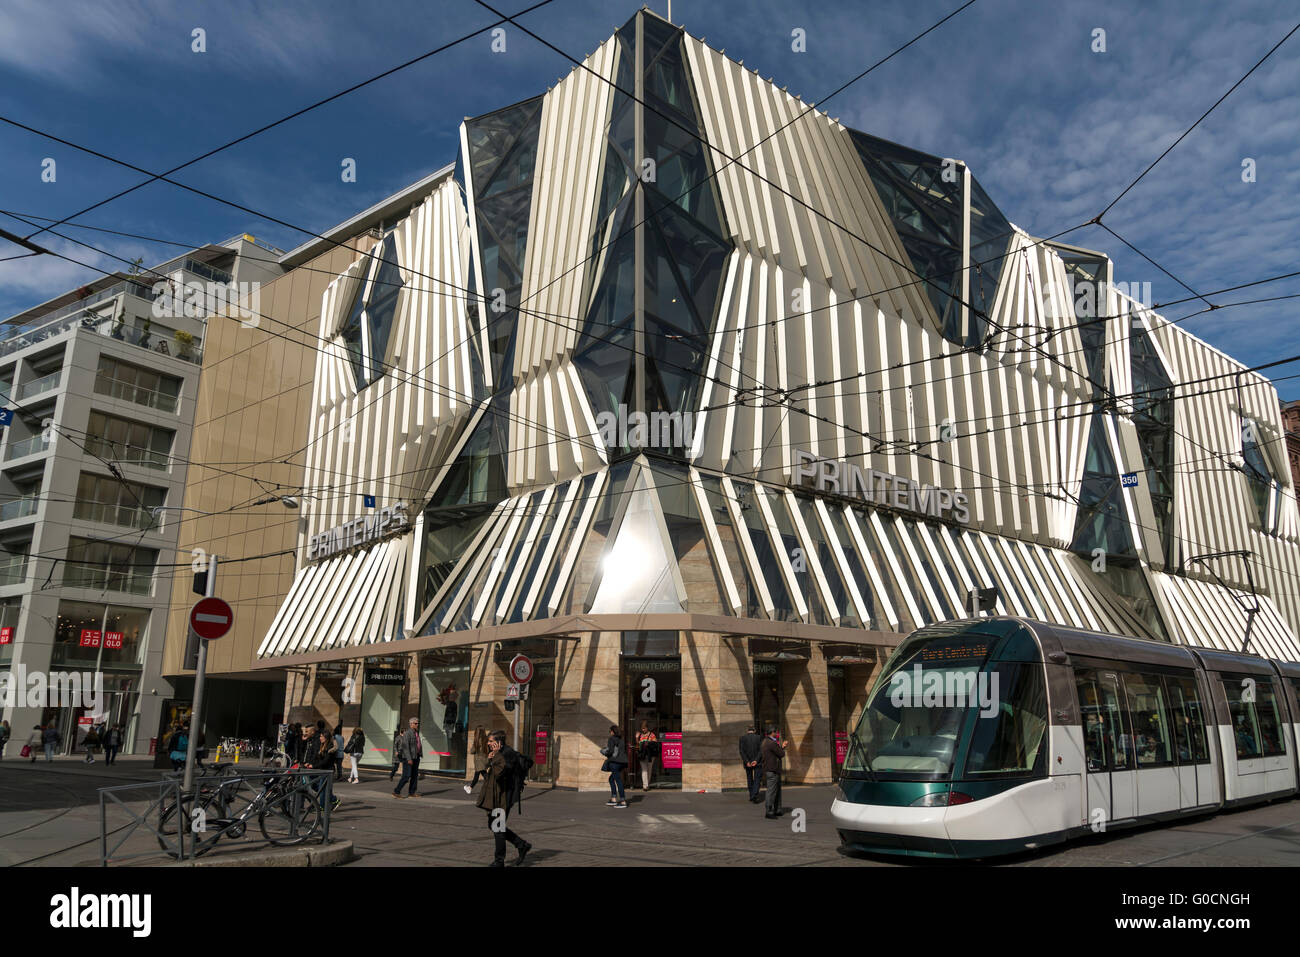 Printemps Department Store and tramway in Strasbourg,  Alsace, France Stock Photo